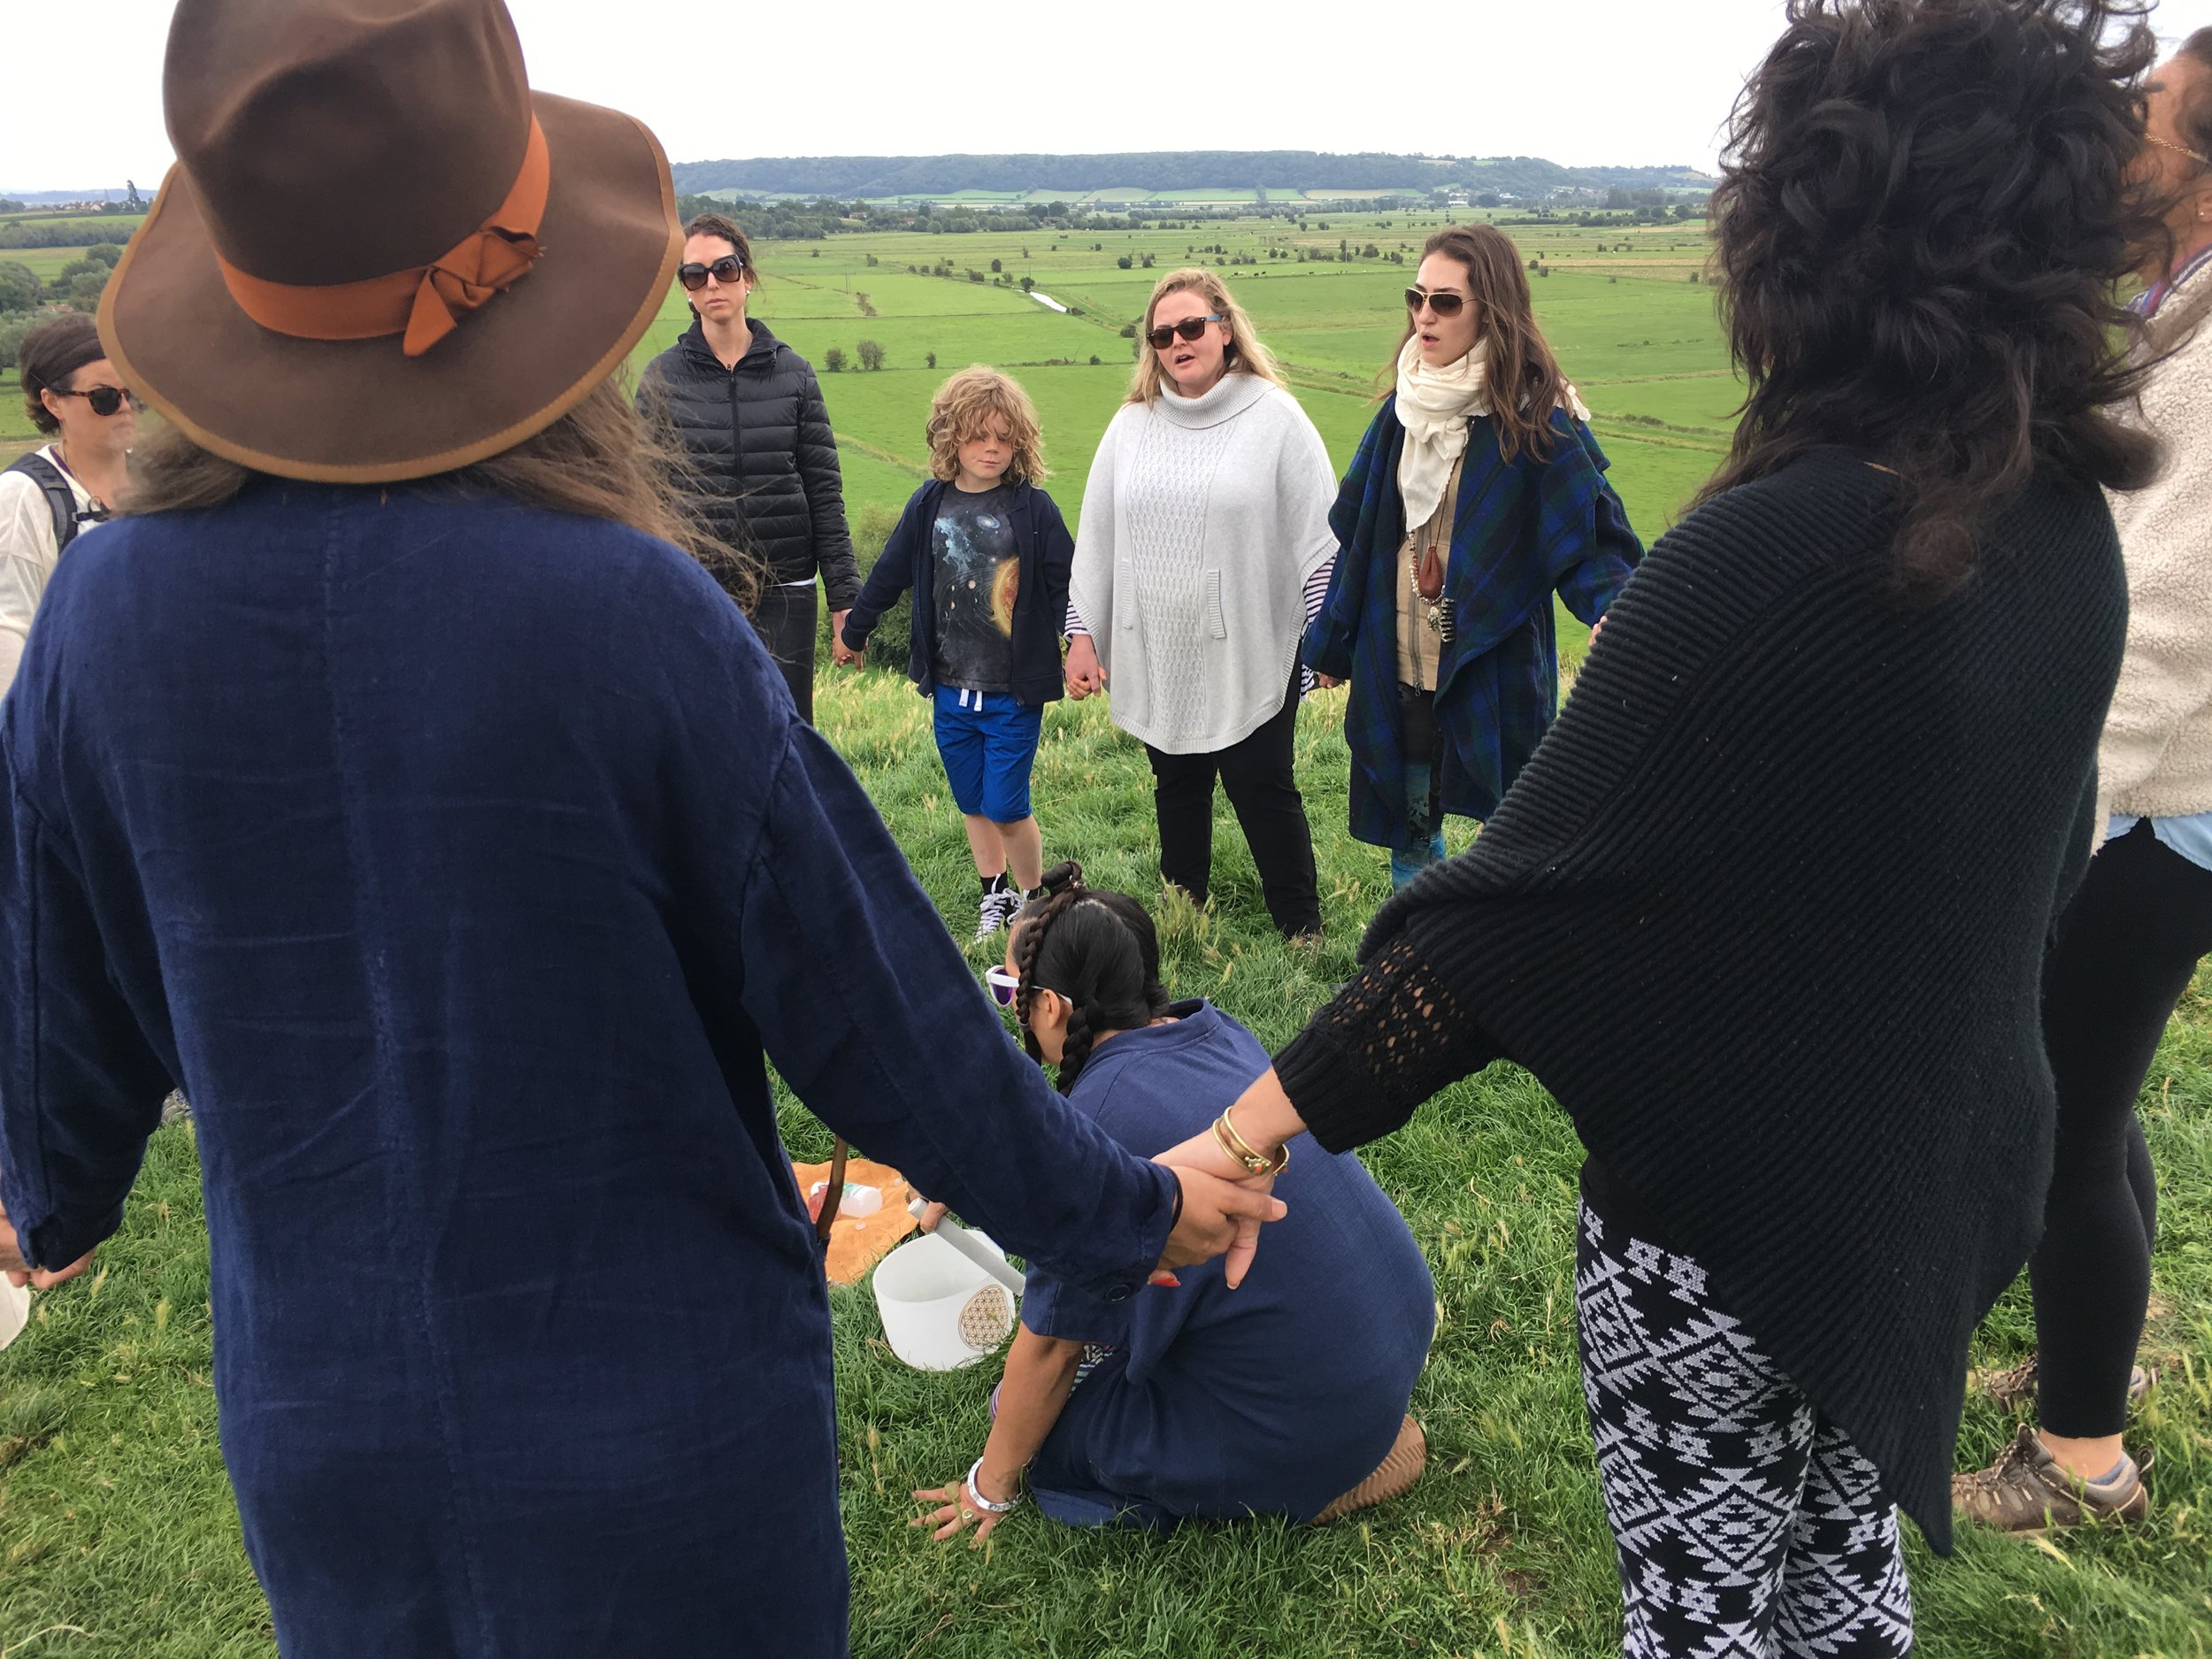 Falling in love with Gaia  Glastonbury 2017 pilgrimage on a Venus Day standing atop Burrow Mump, a place where the Mary and Michael ley lines intersect.